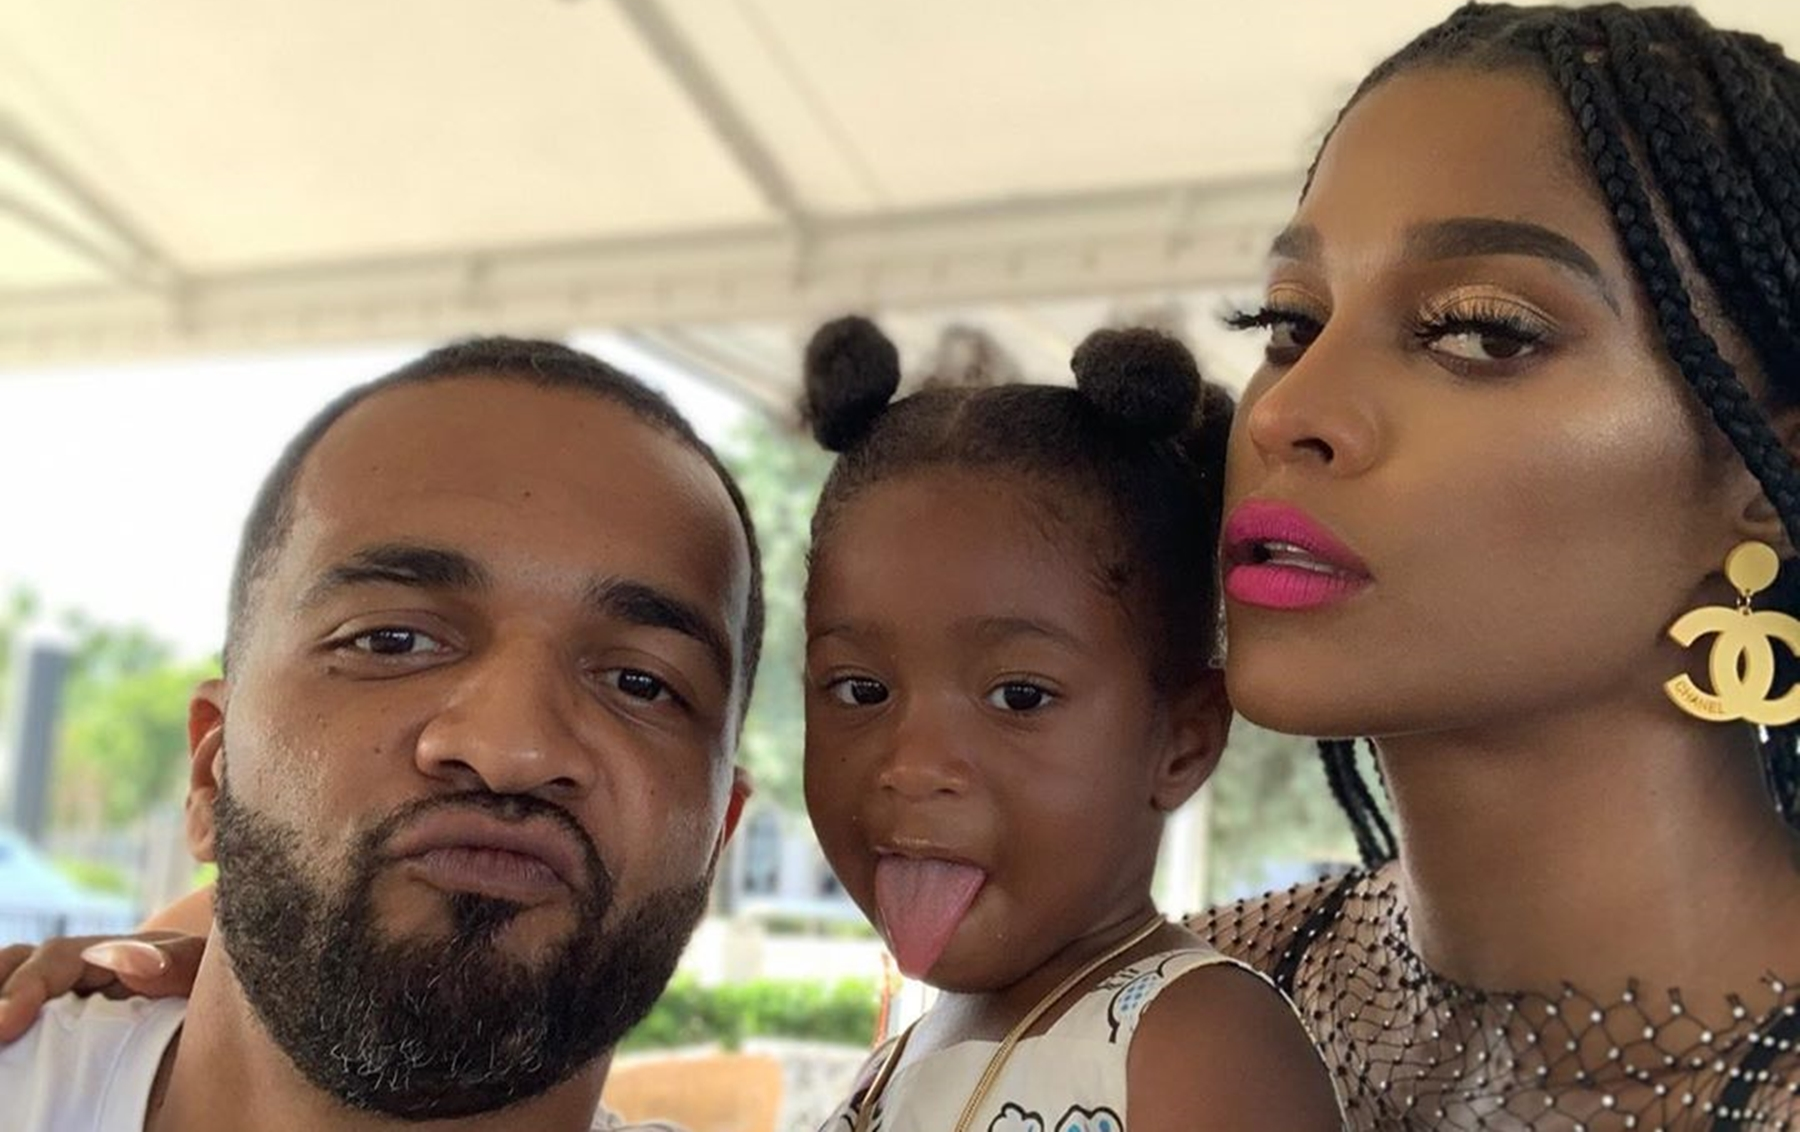 """""""joseline-hernandez-who-might-be-pregnant-and-her-bf-dj-ballistic-share-family-reunion-photo-with-stevie-j-his-wife-faith-evans-and-daughter-bonnie-bella"""""""